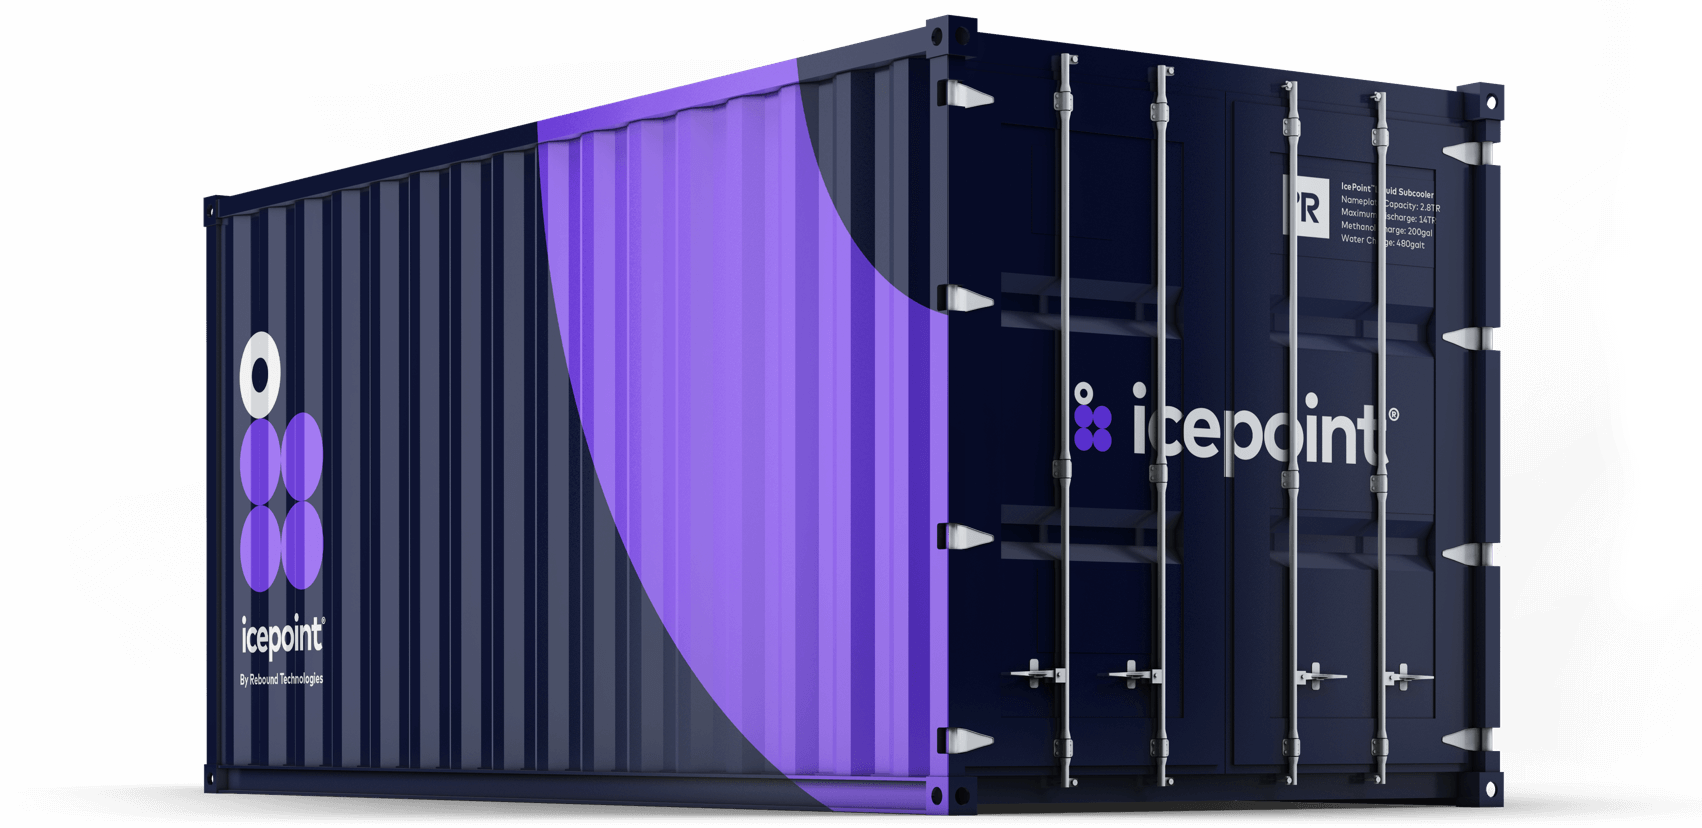 cold chain venture capital - Rebound Technology IcePoint